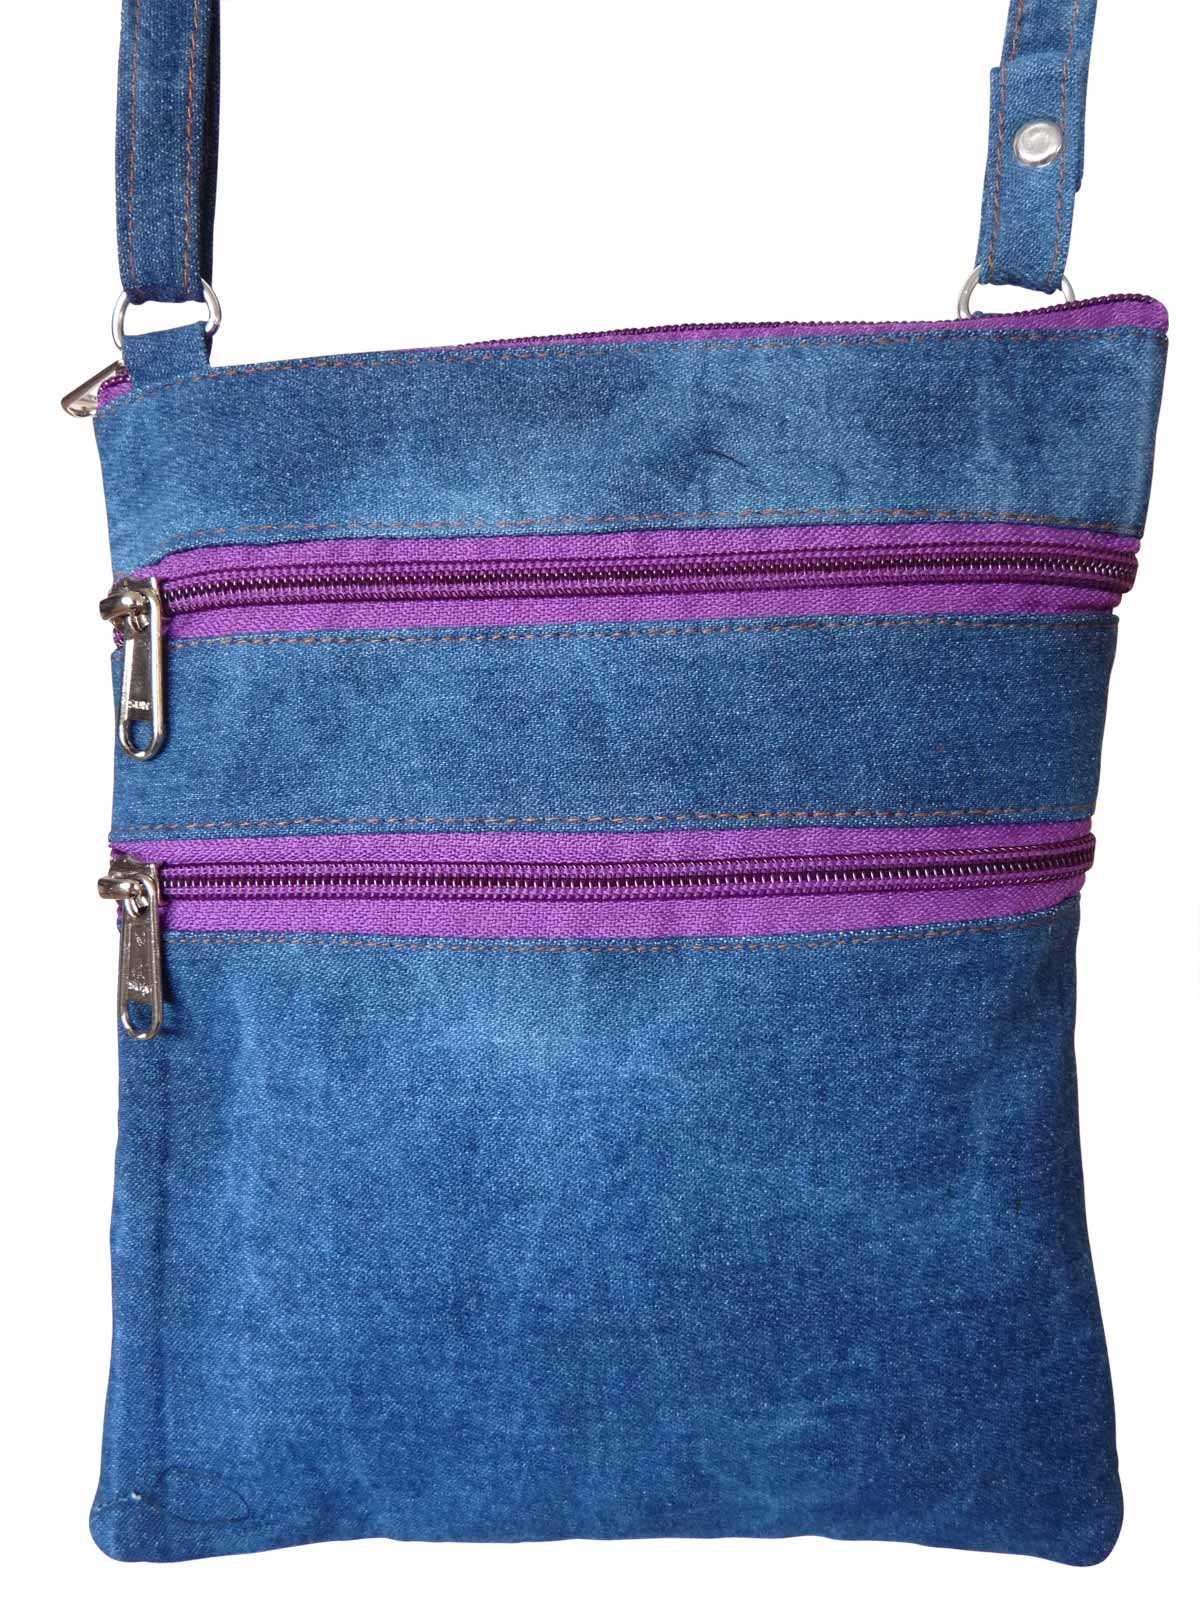 Denim Travel Pouch Purple Zips RL178DPuz